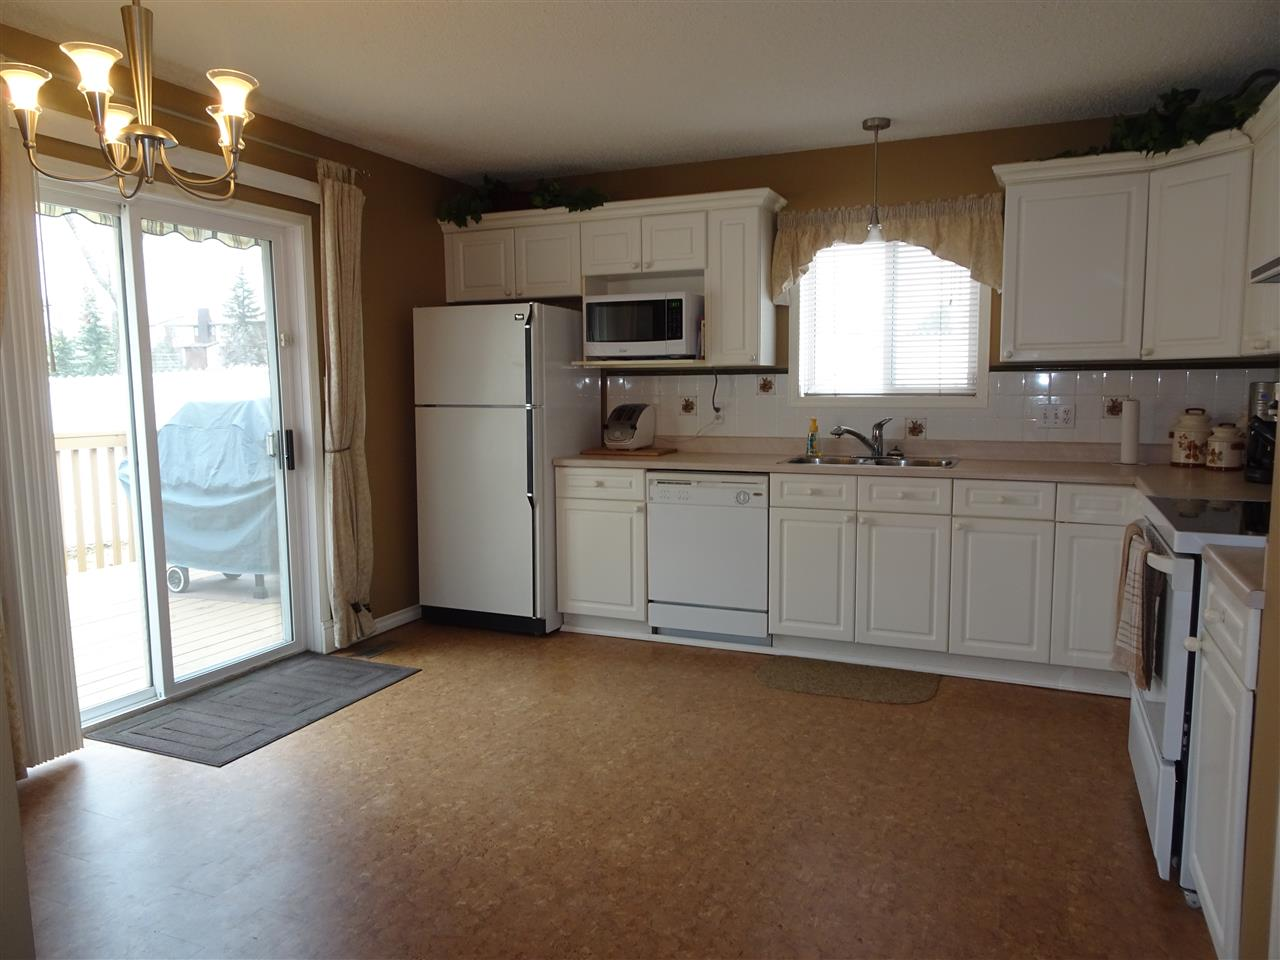 Photo 3: 8146 27 Avenue in Edmonton: Zone 29 House Half Duplex for sale : MLS® # E4059201